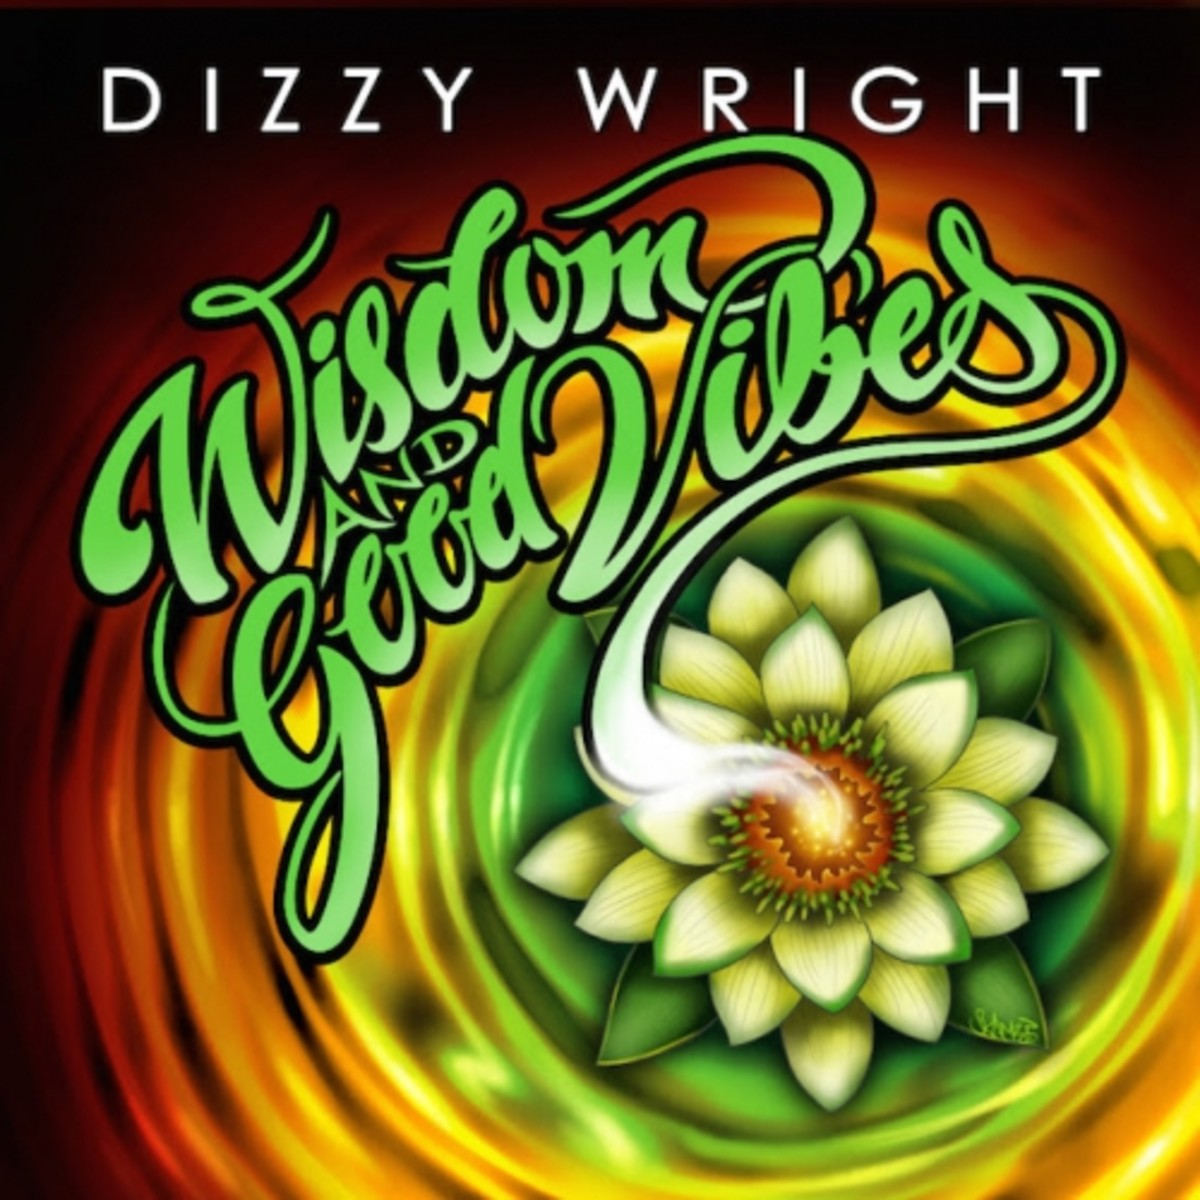 dizzy-wright-wisdom-and-good-vibes.jpg